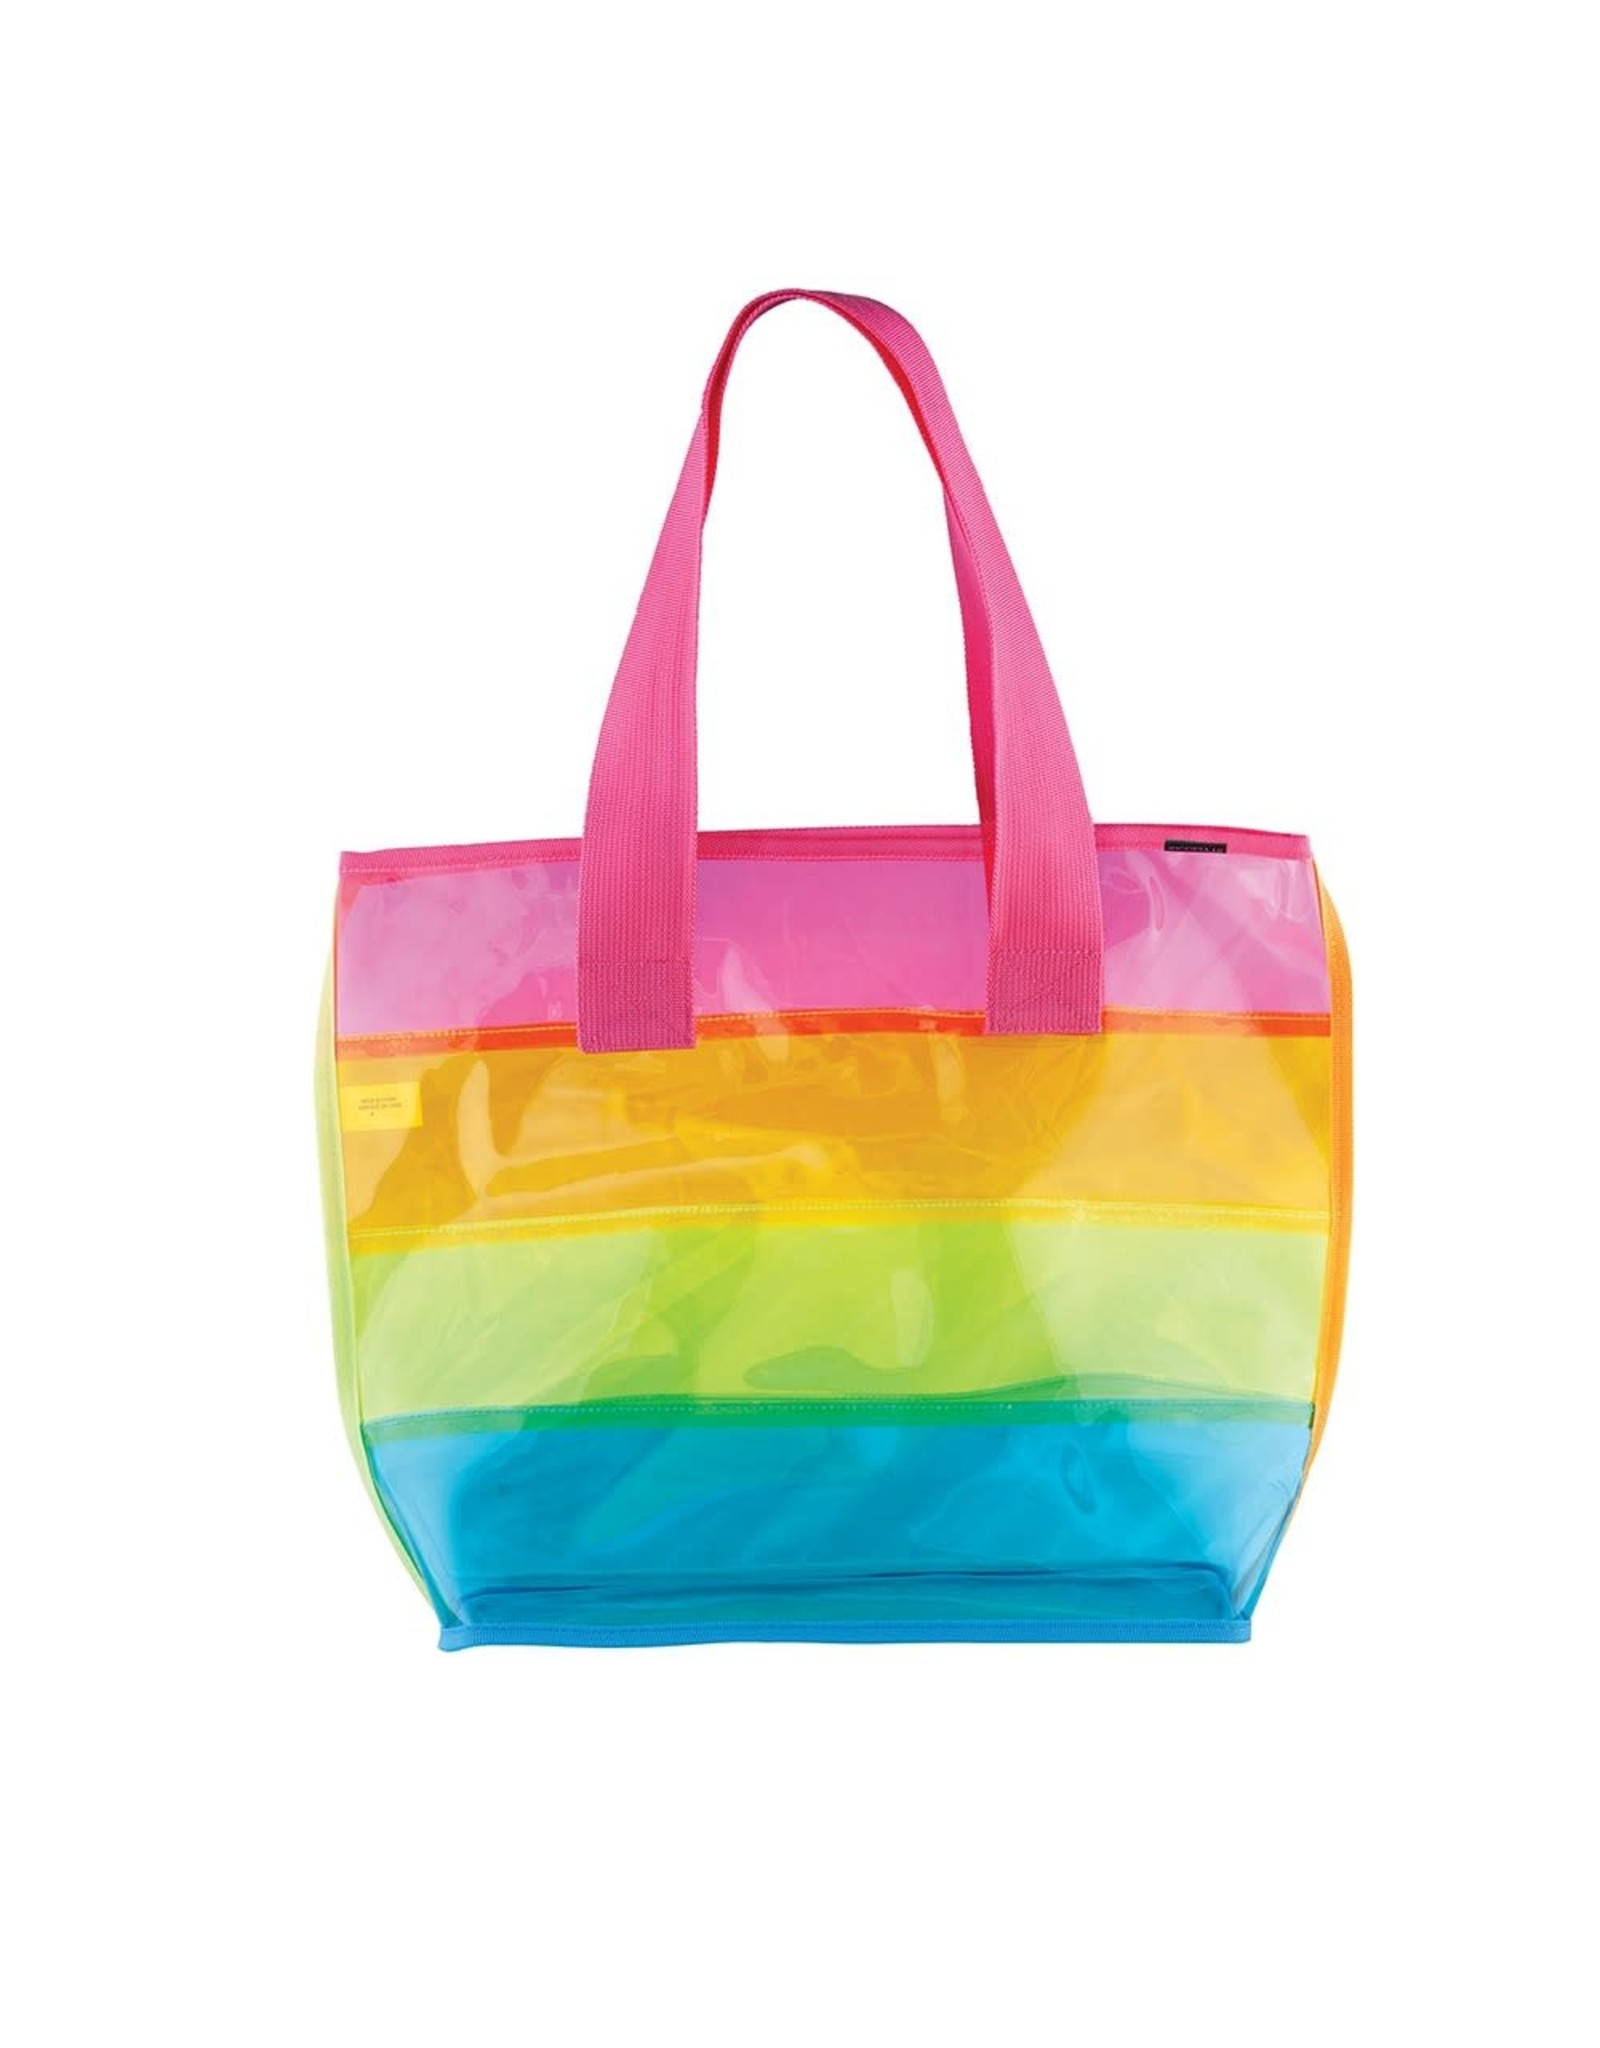 Fashion Angels Transparent Rainbow Tote